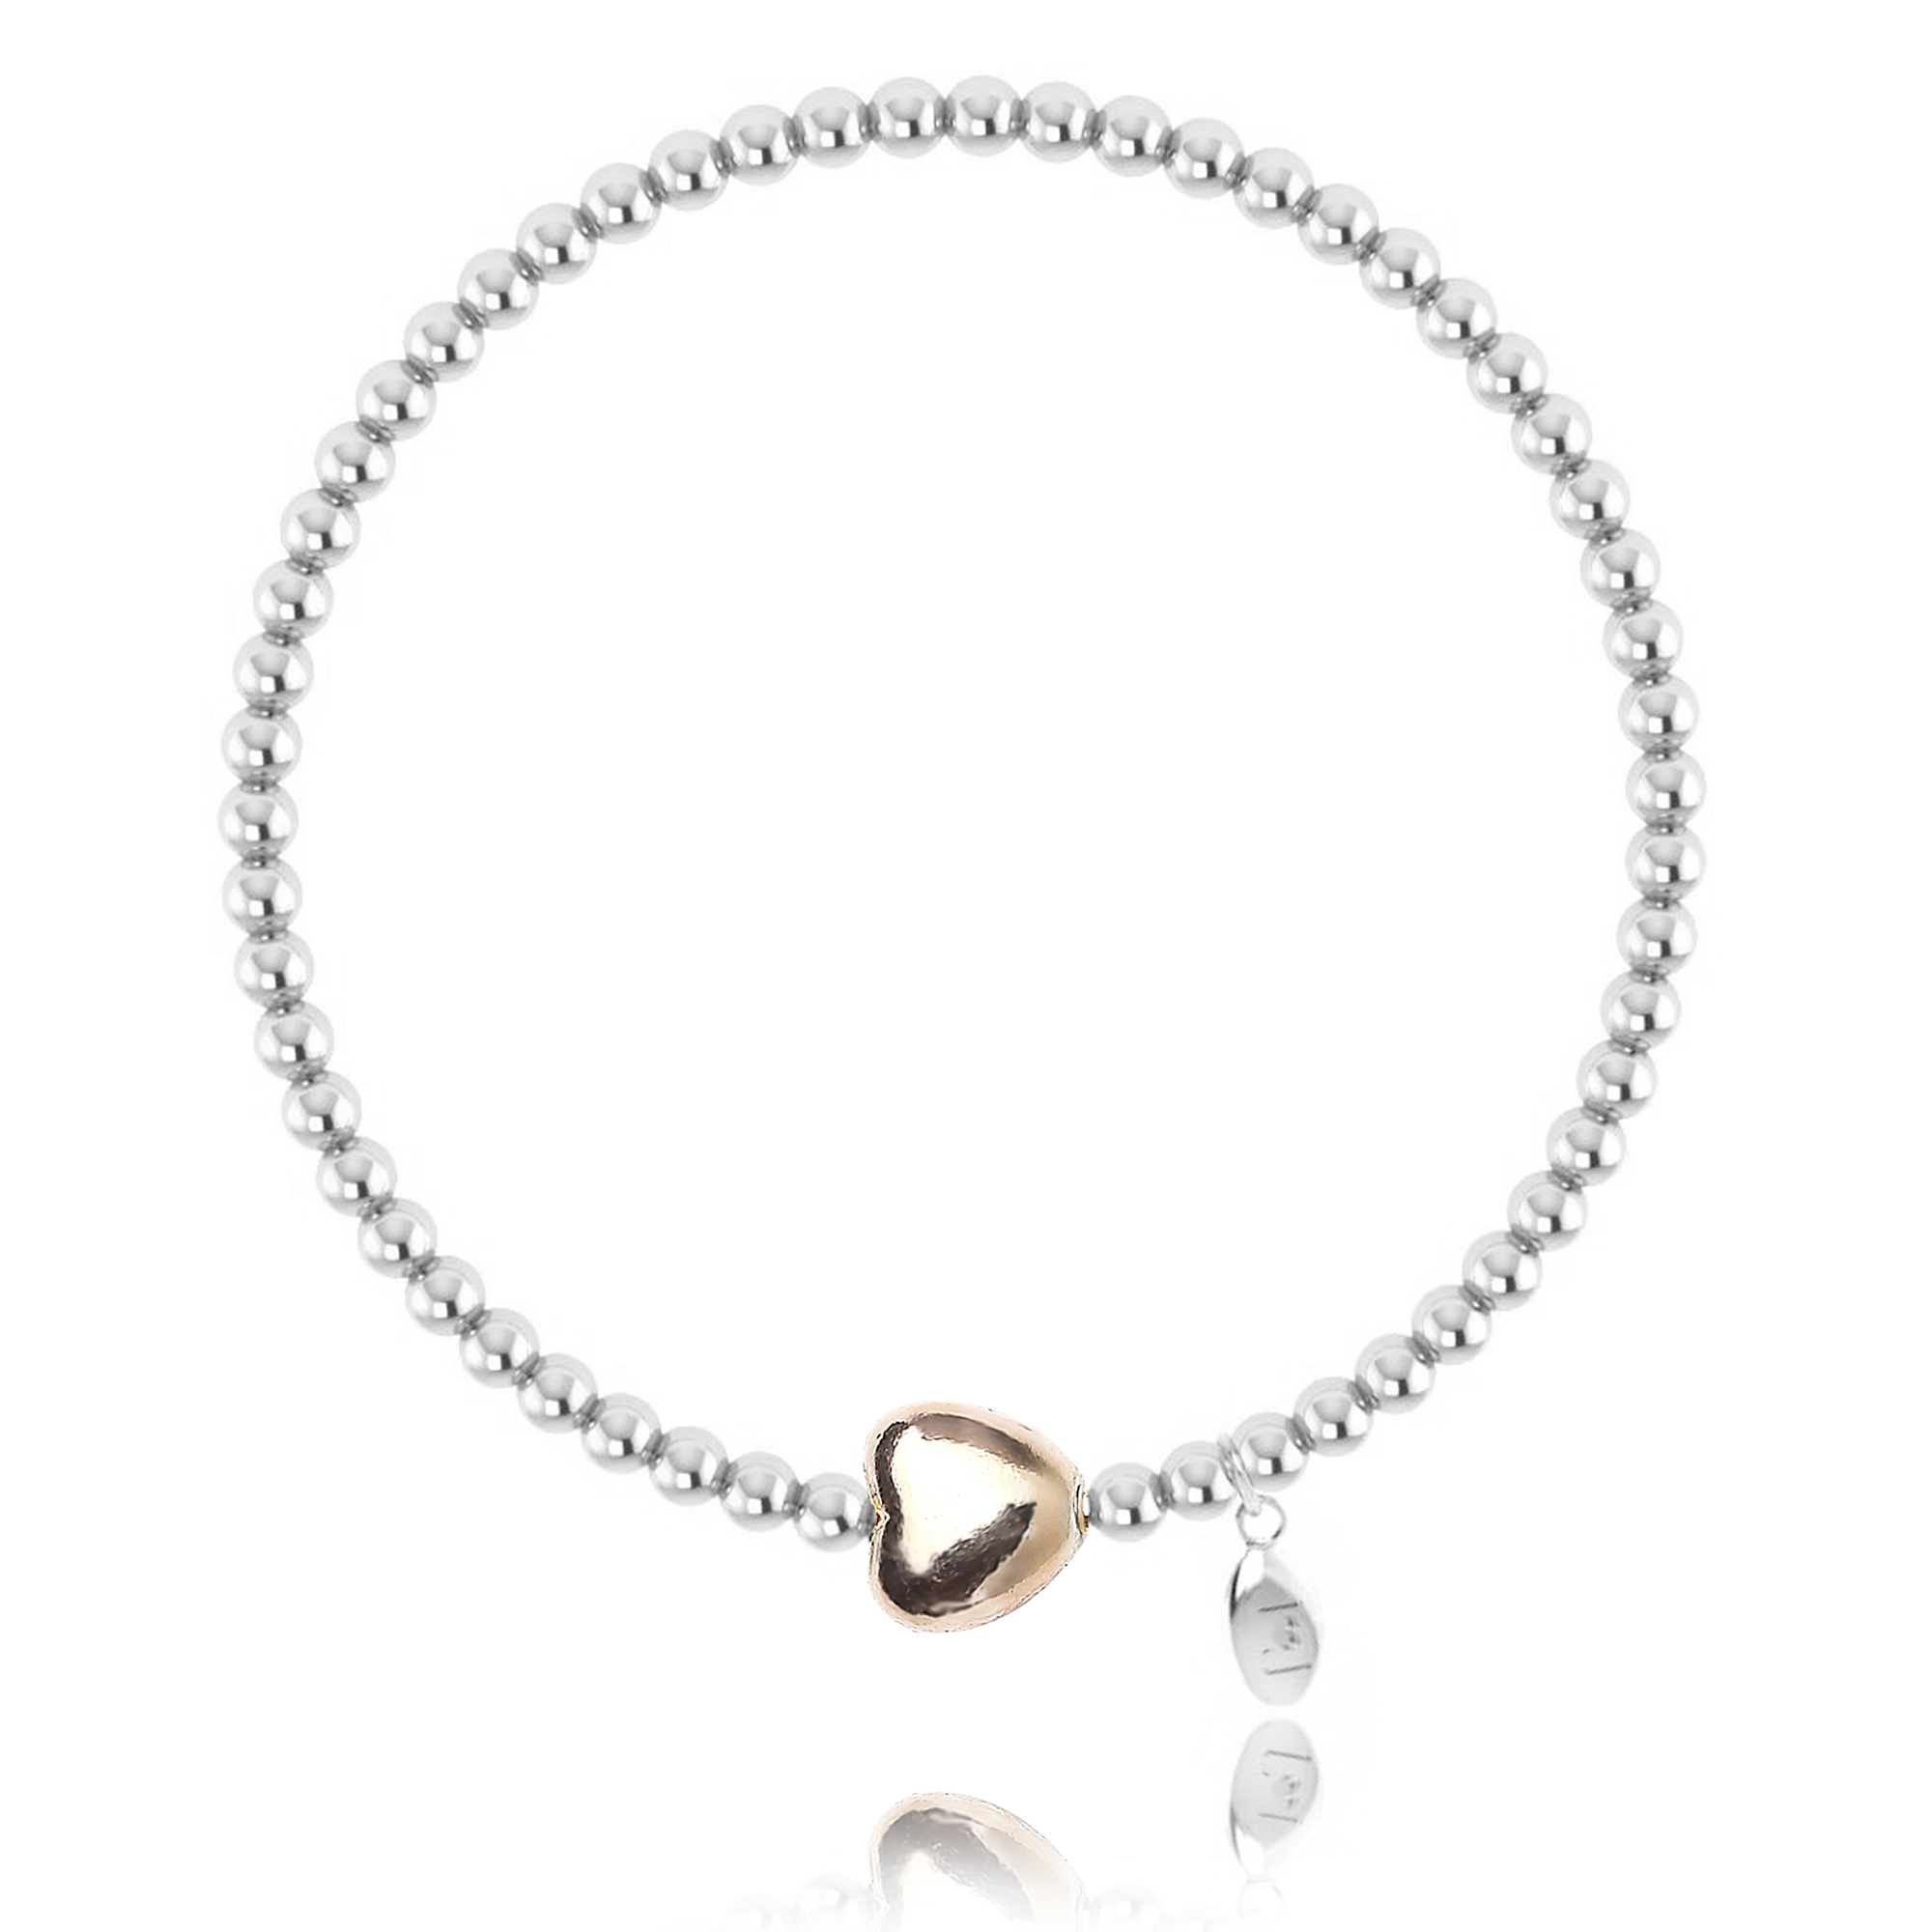 A Little Heart Of Gold Bracelet